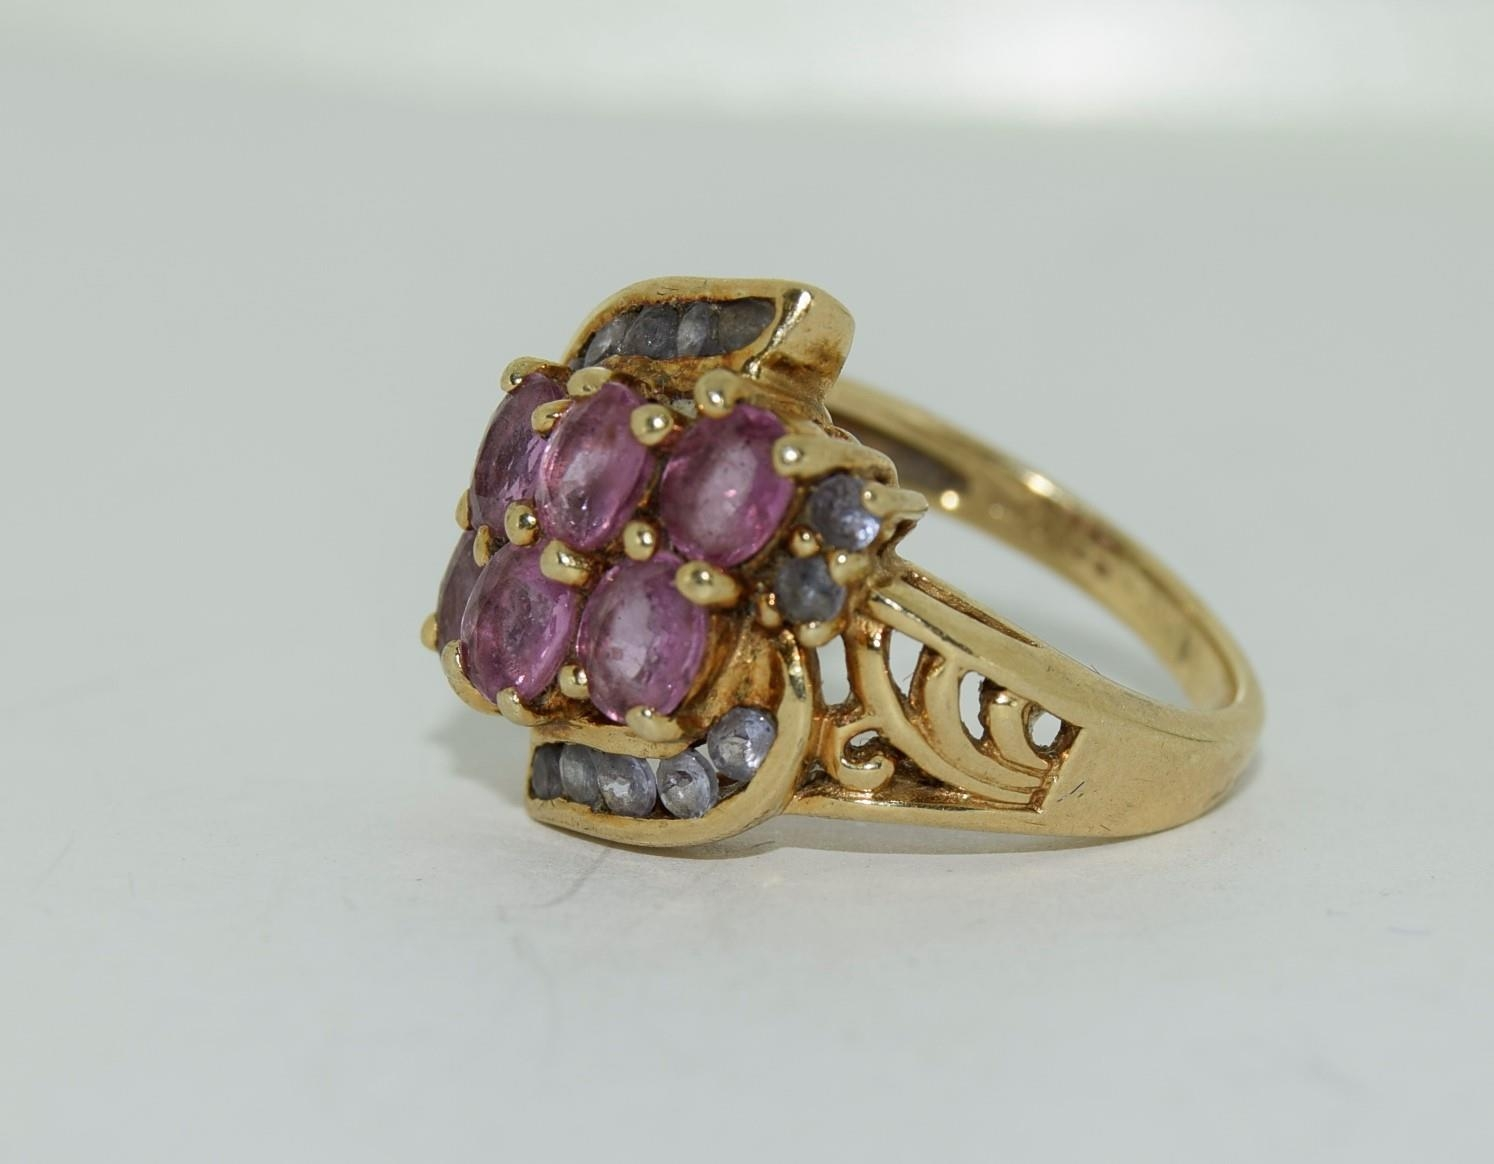 9ct gold ladies pink tourmaline and sapphire twist ring size L 4.9gm - Image 7 of 10